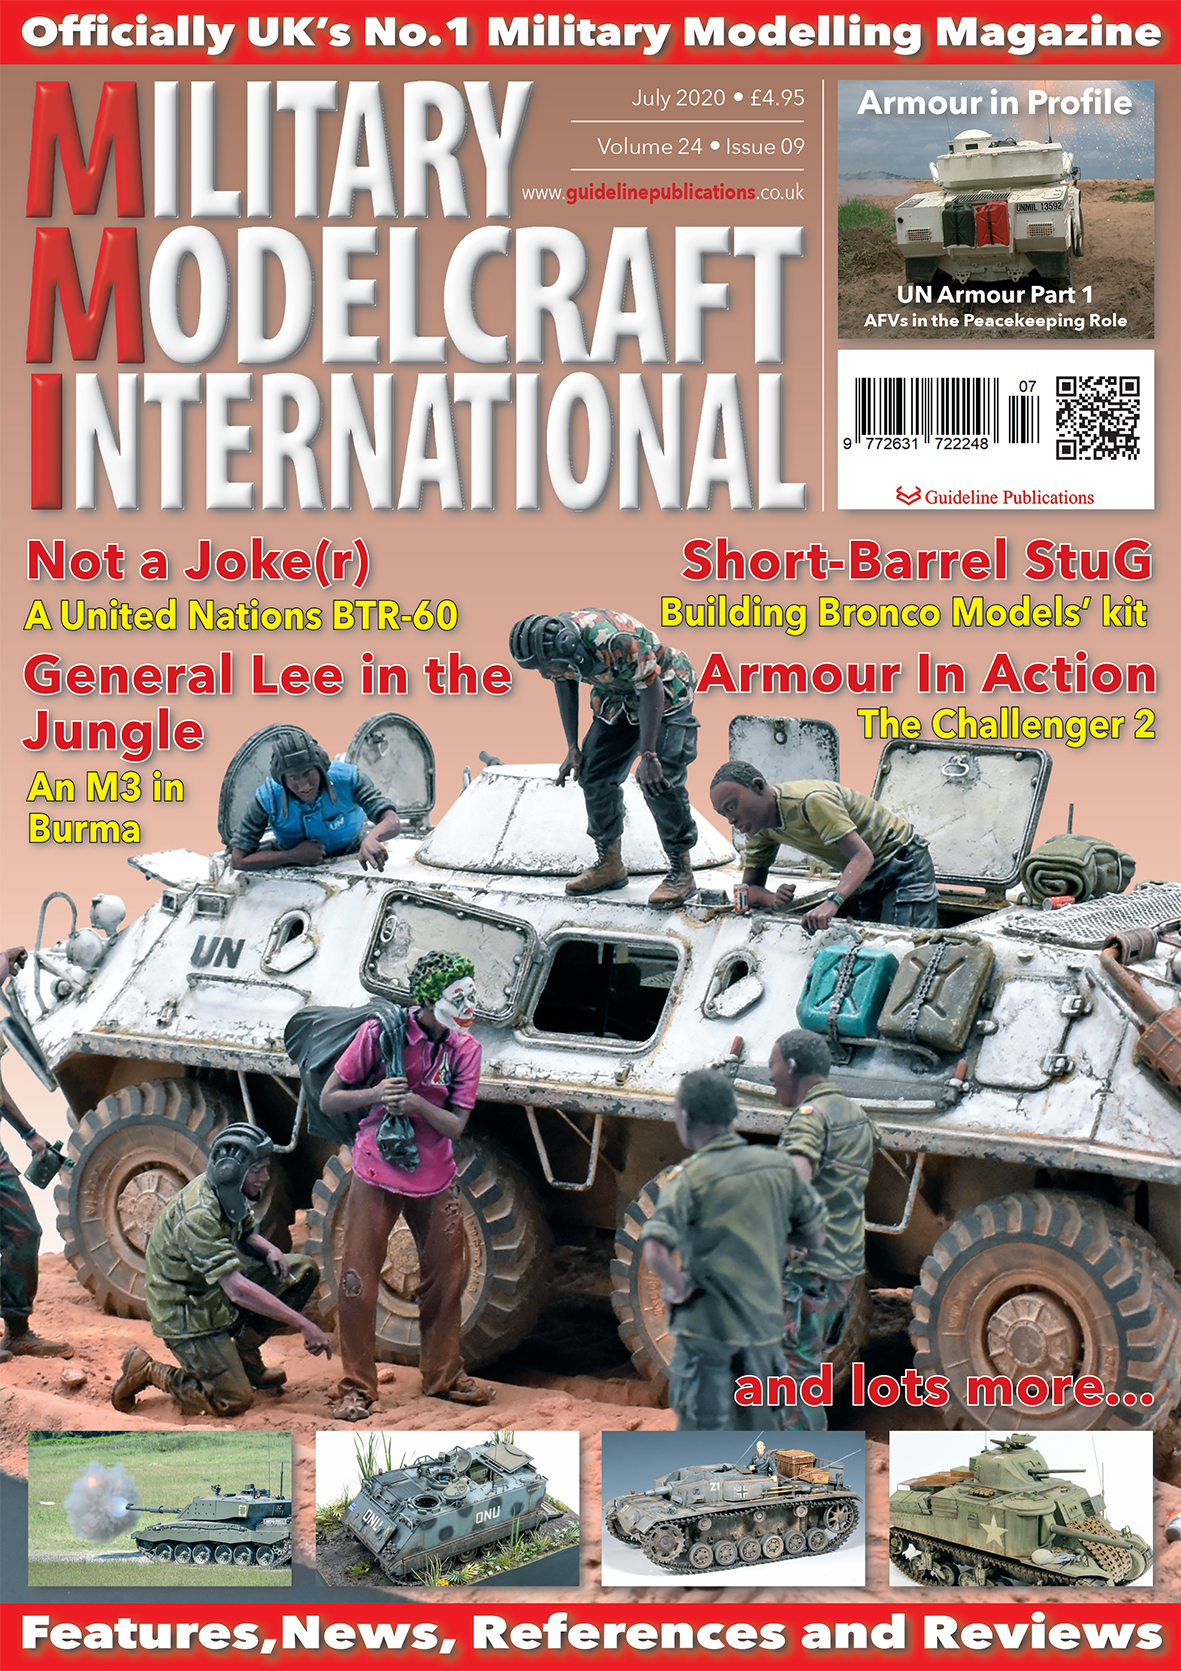 Guideline Publications Military Modelcraft Int July 20 vol 24-009 July 20